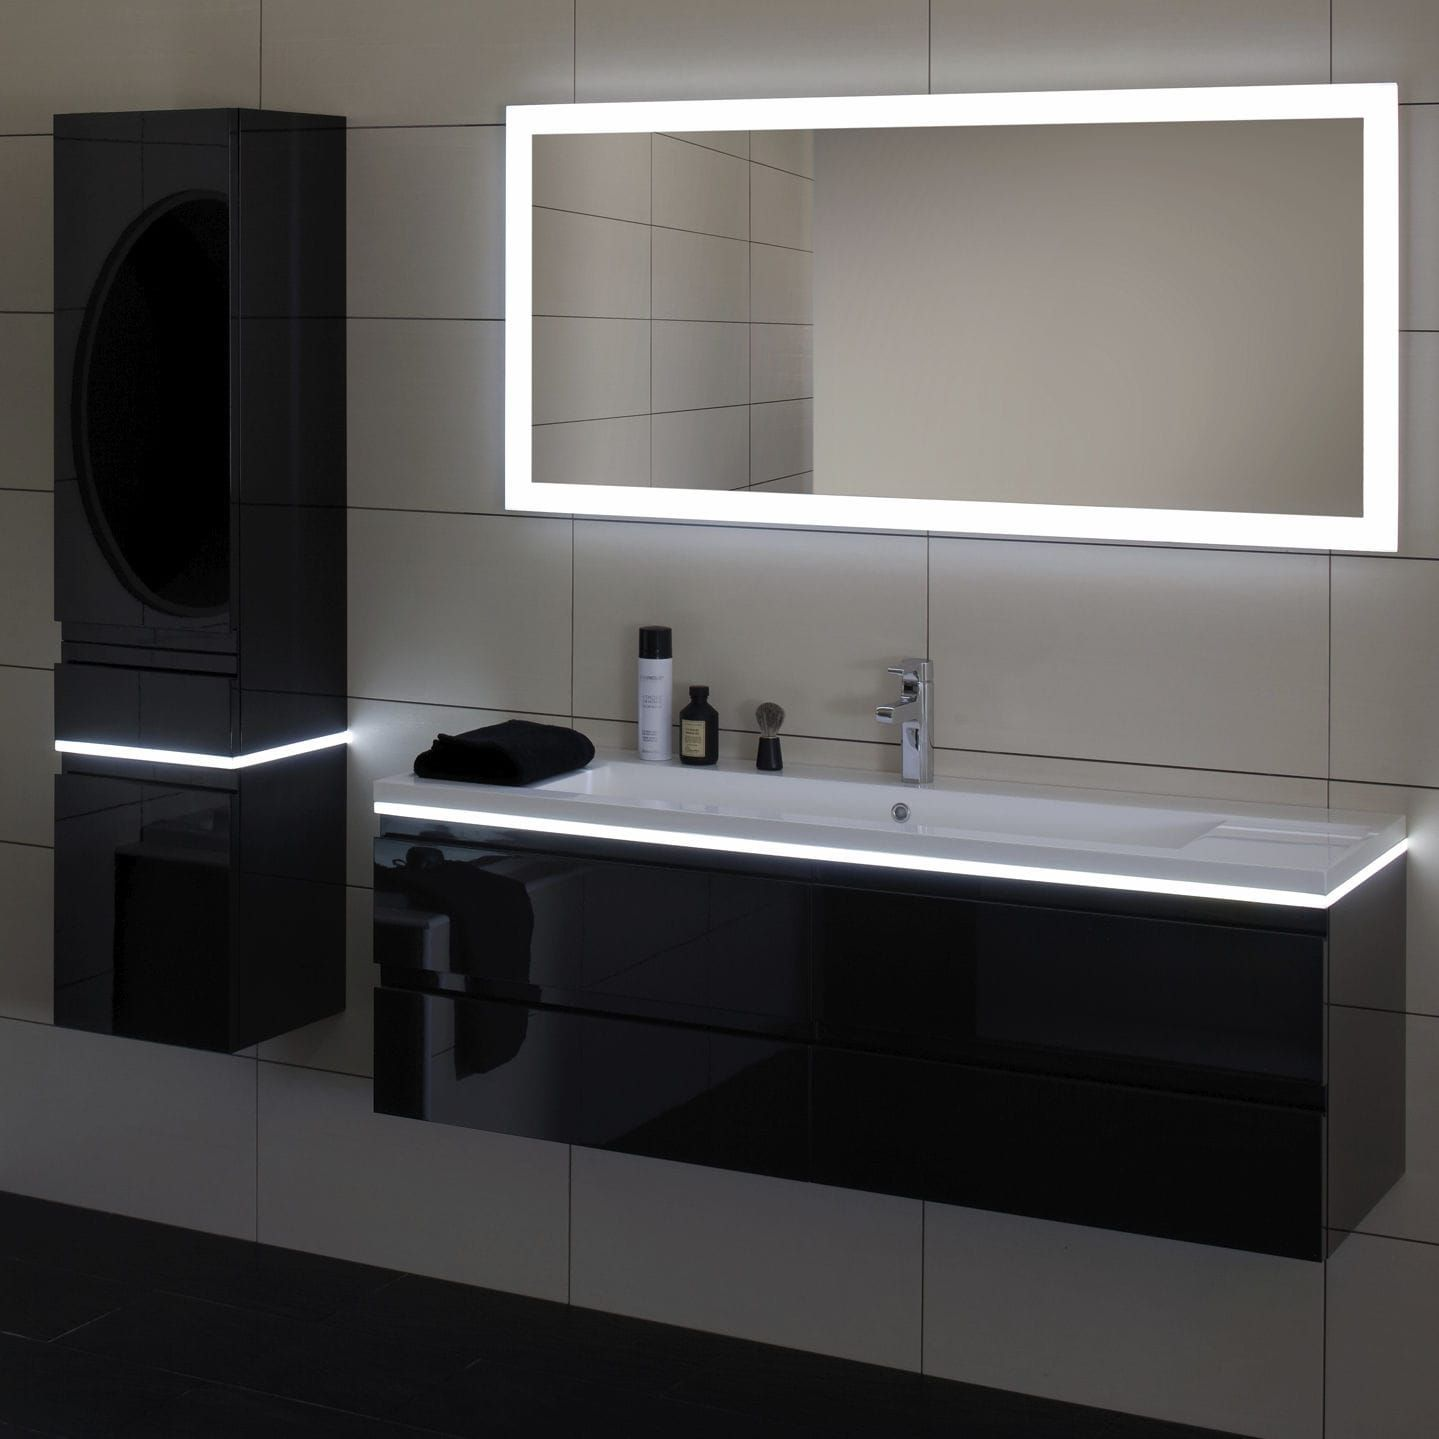 miroir mural contemporain rectangulaire lumineux led halo sanijura salle de bain. Black Bedroom Furniture Sets. Home Design Ideas